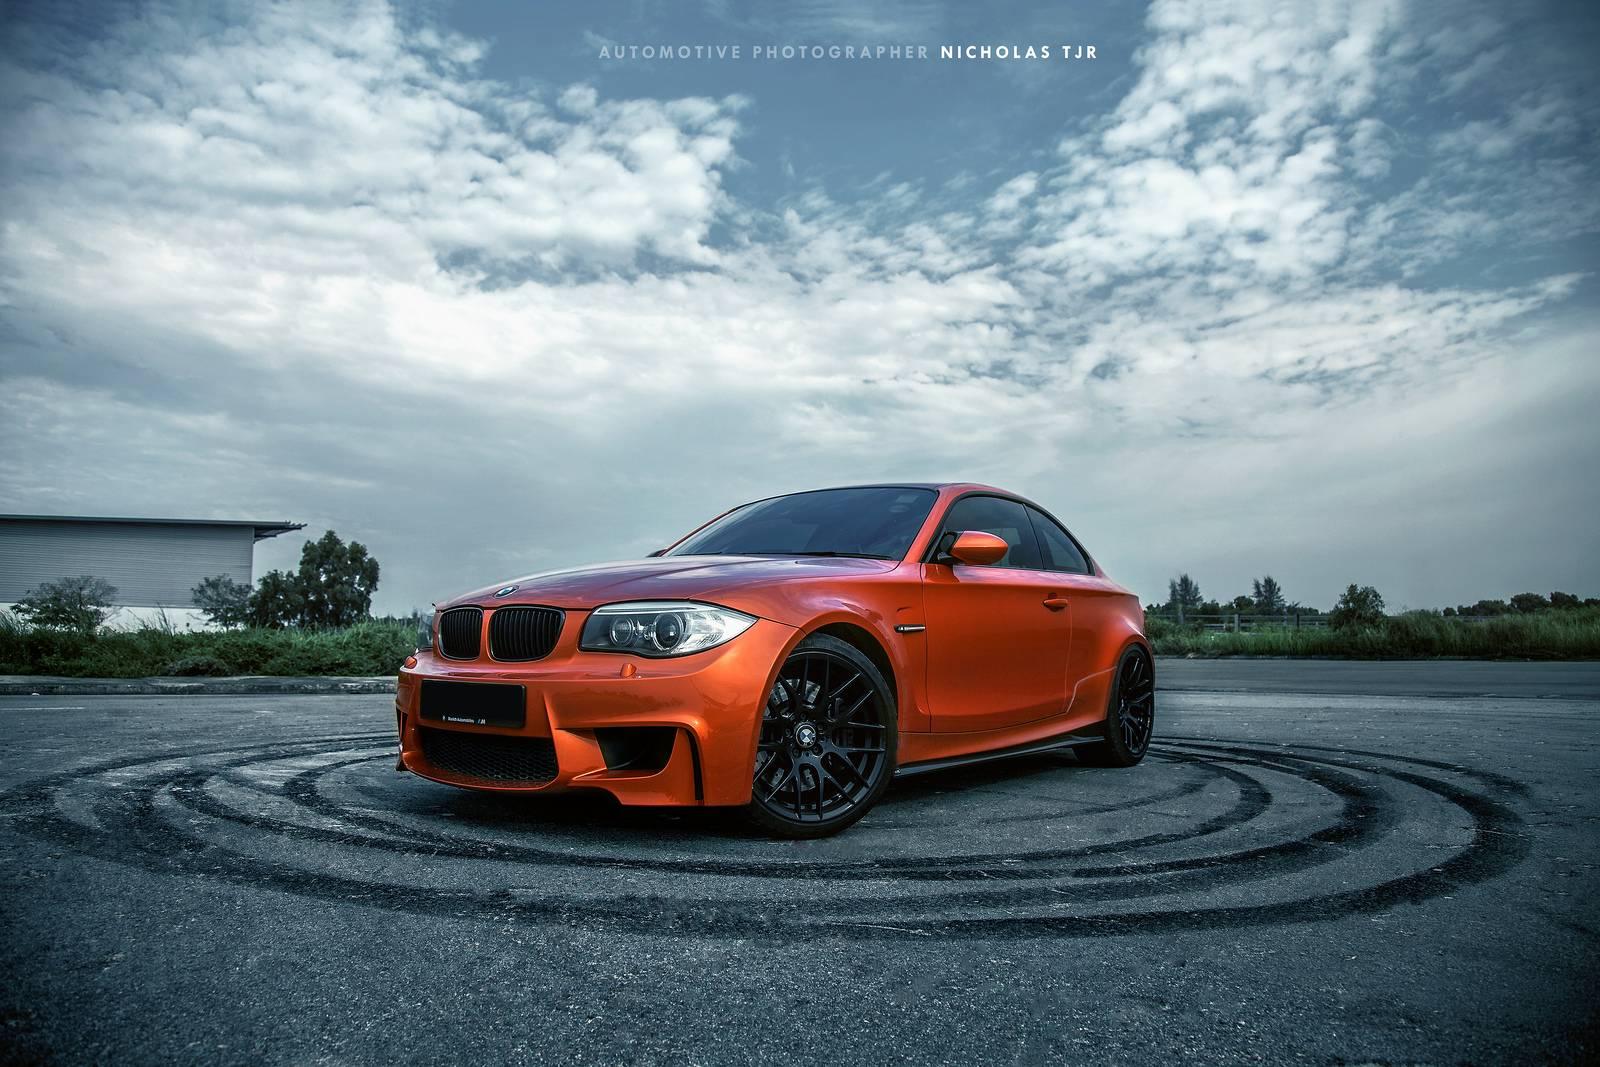 Photo Of The Day: BMW 1M Coupe by Nicholas TJ.R